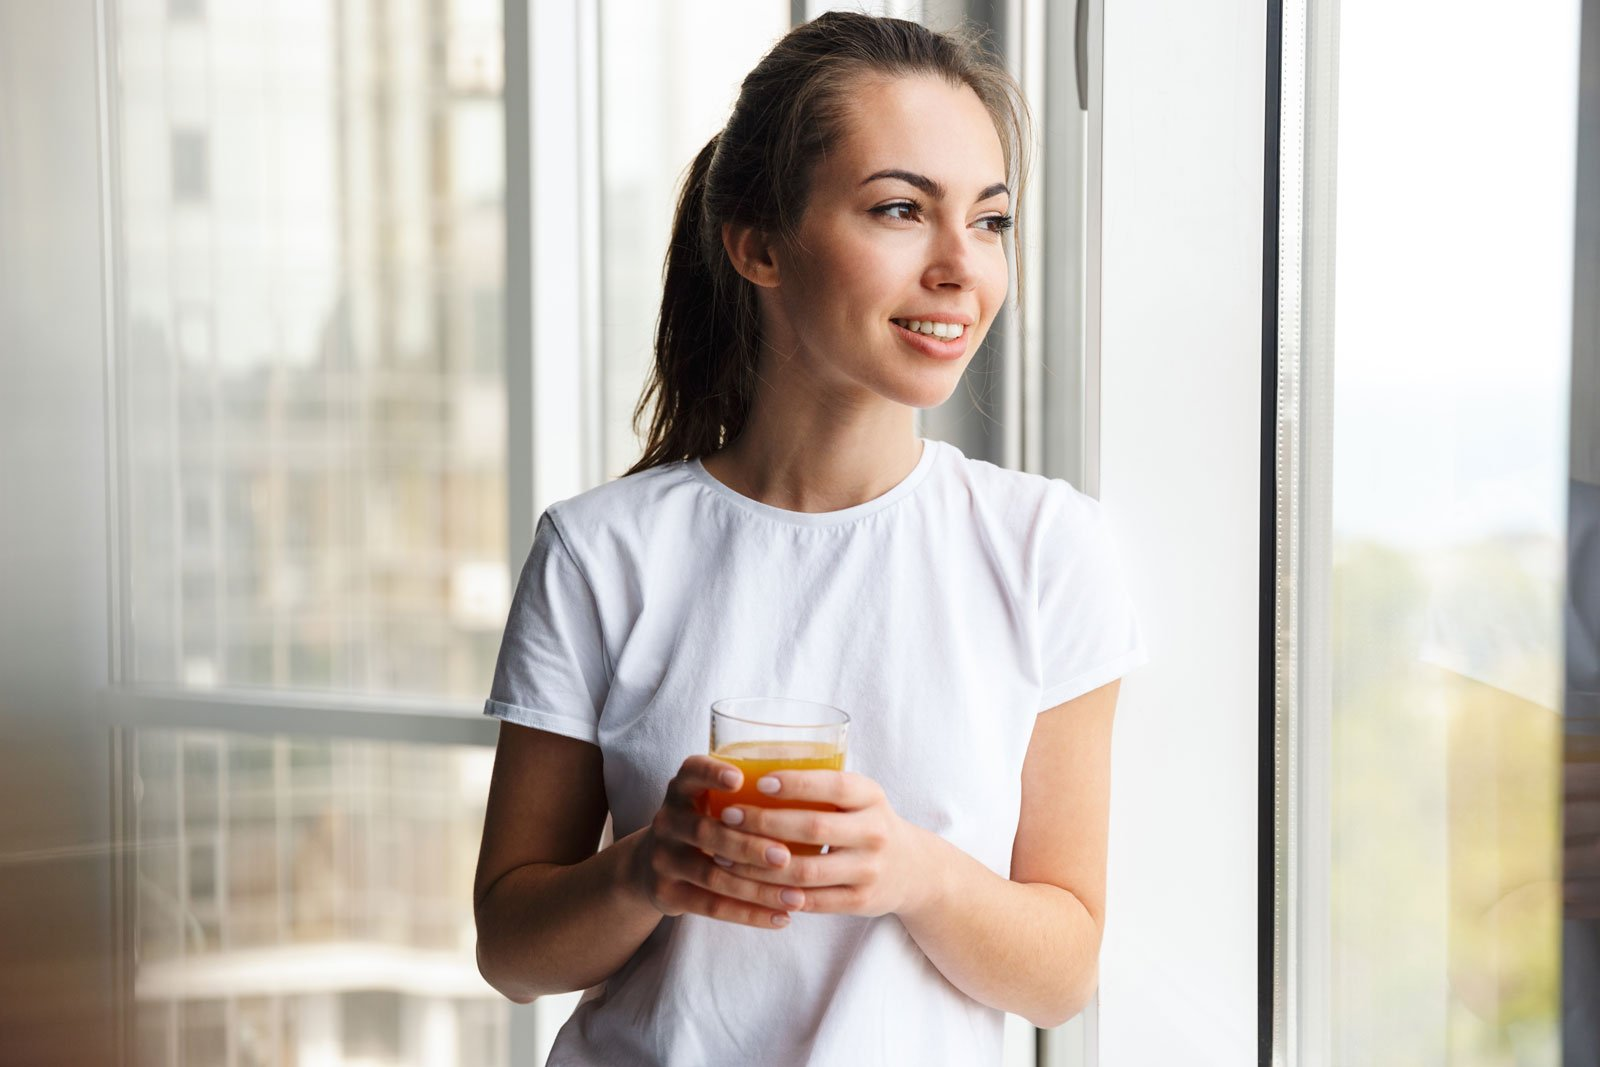 image-of-pleased-woman-smiling-and-drinking-fresh--QE7QQSL